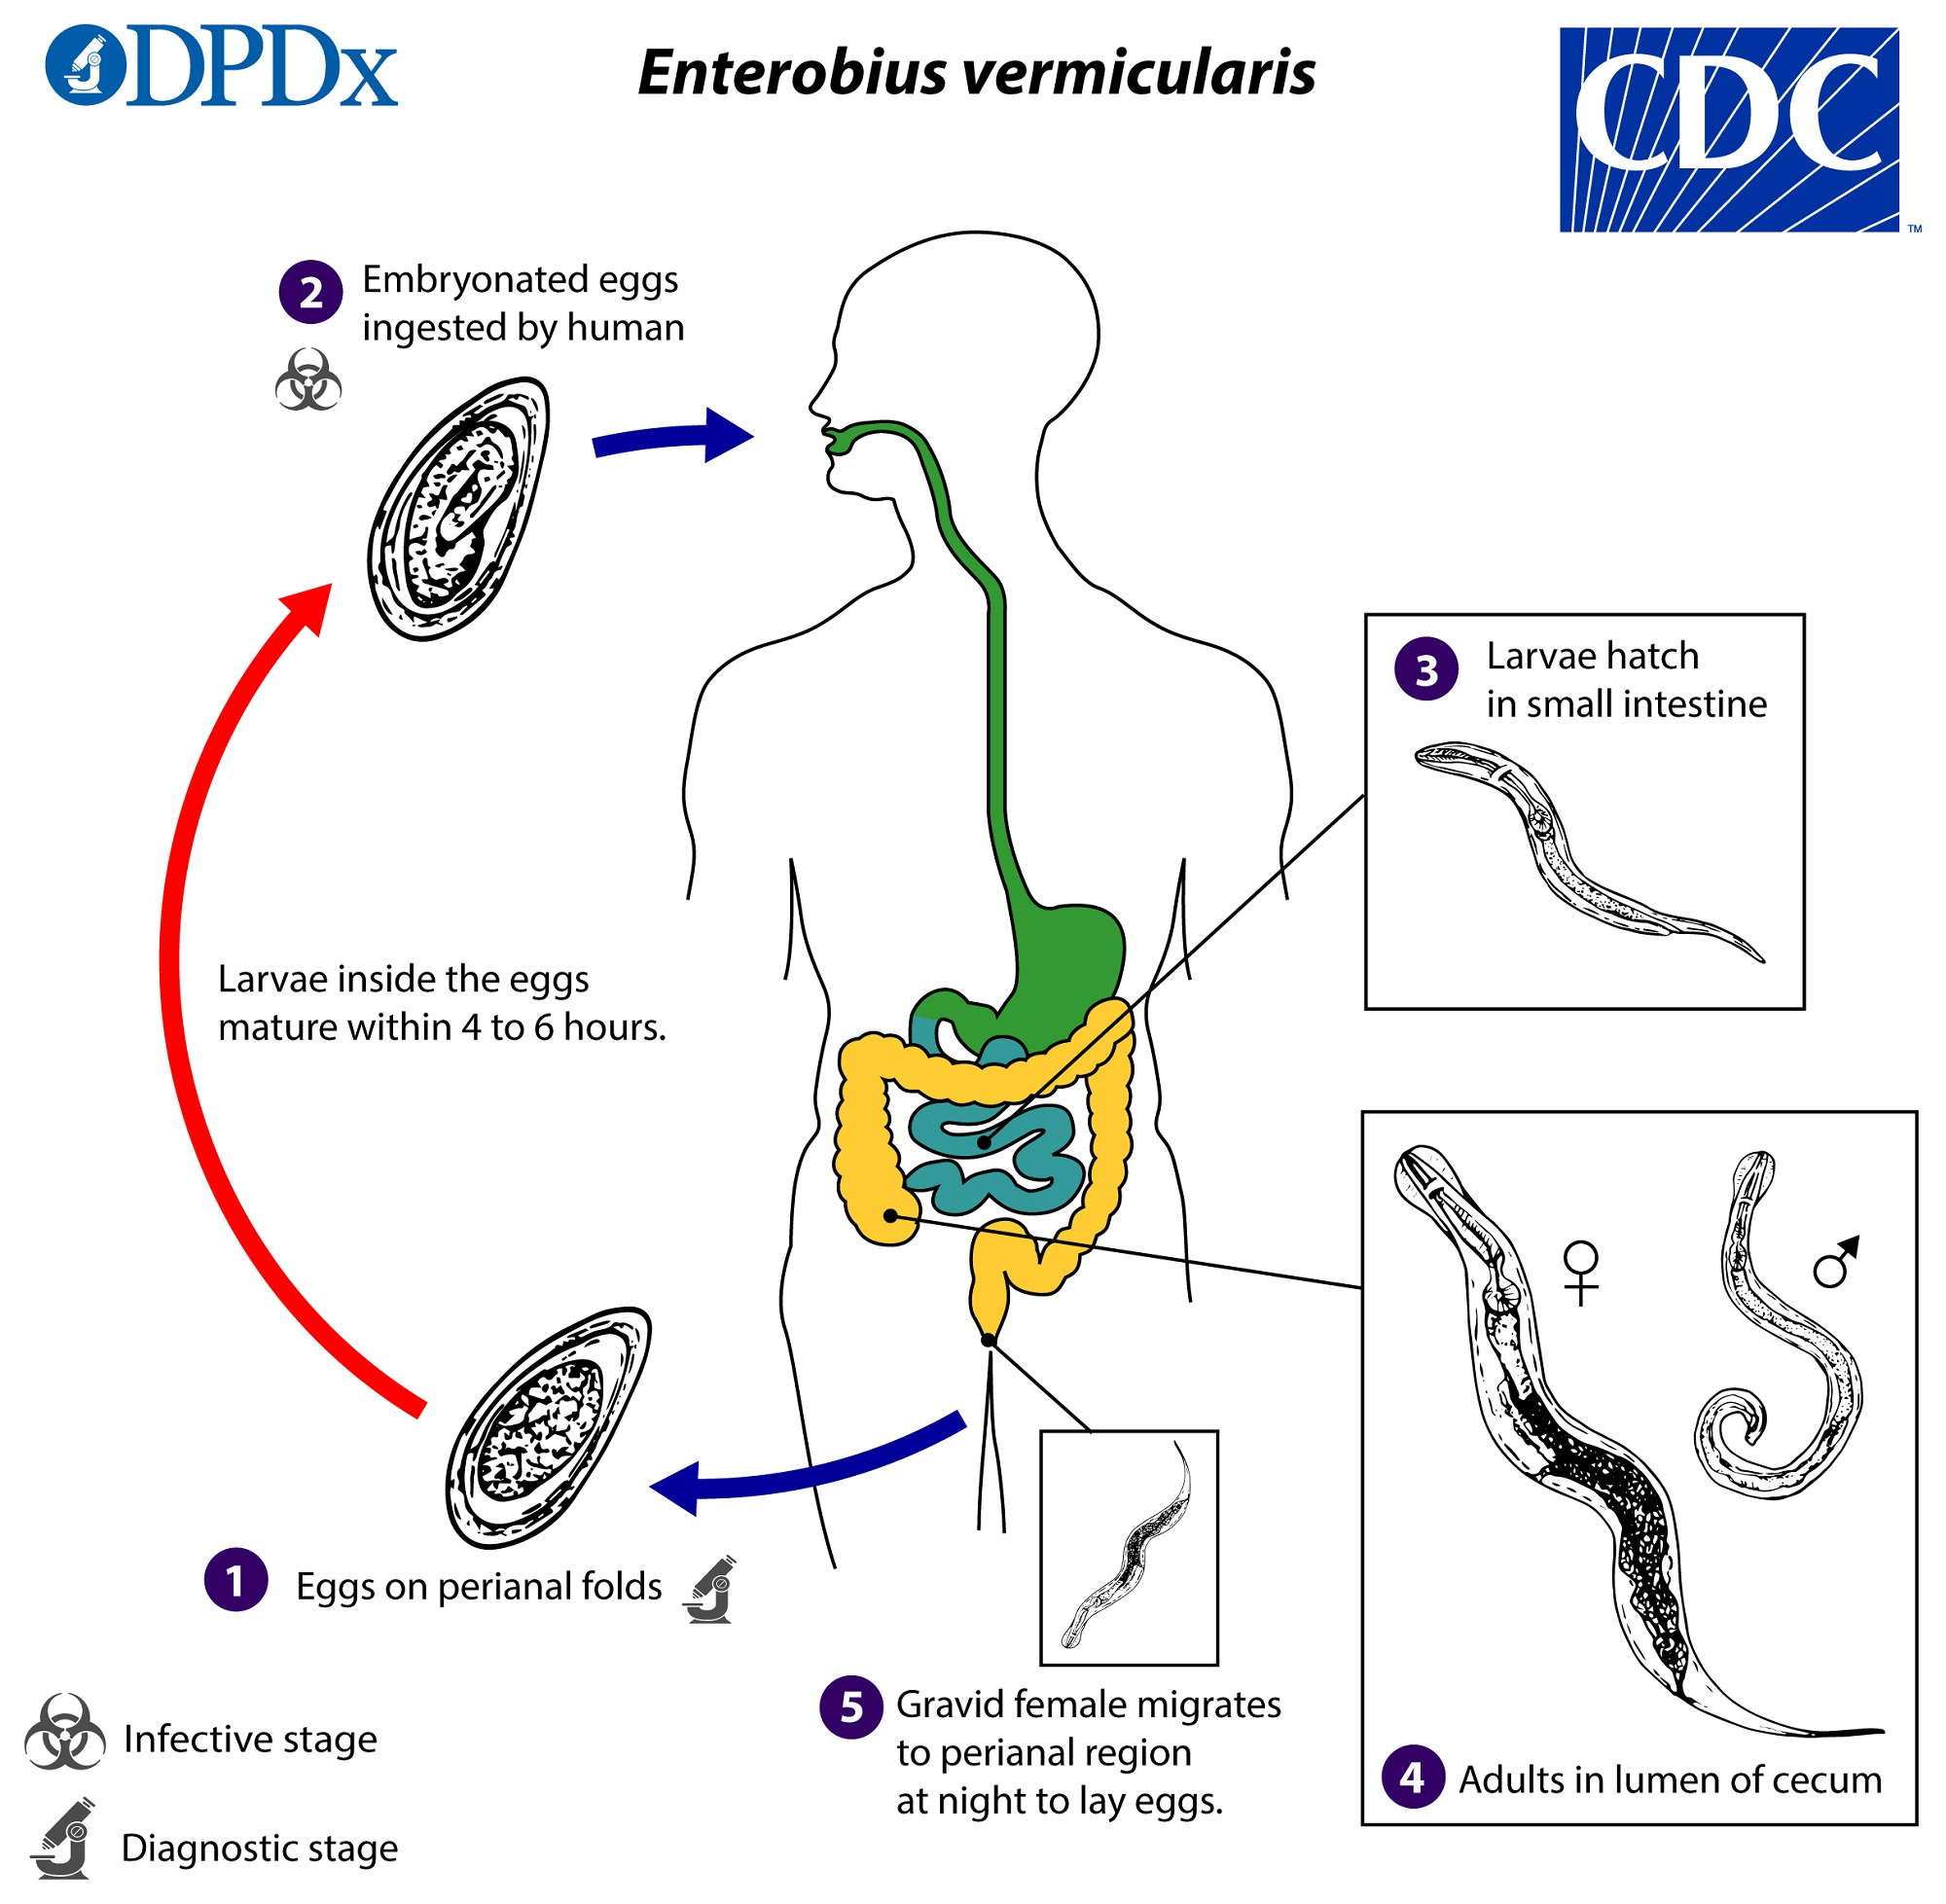 Enterobius vermicularis estadios, Atlas-de-Parasitologia kd-group.ro - PDF Free Download